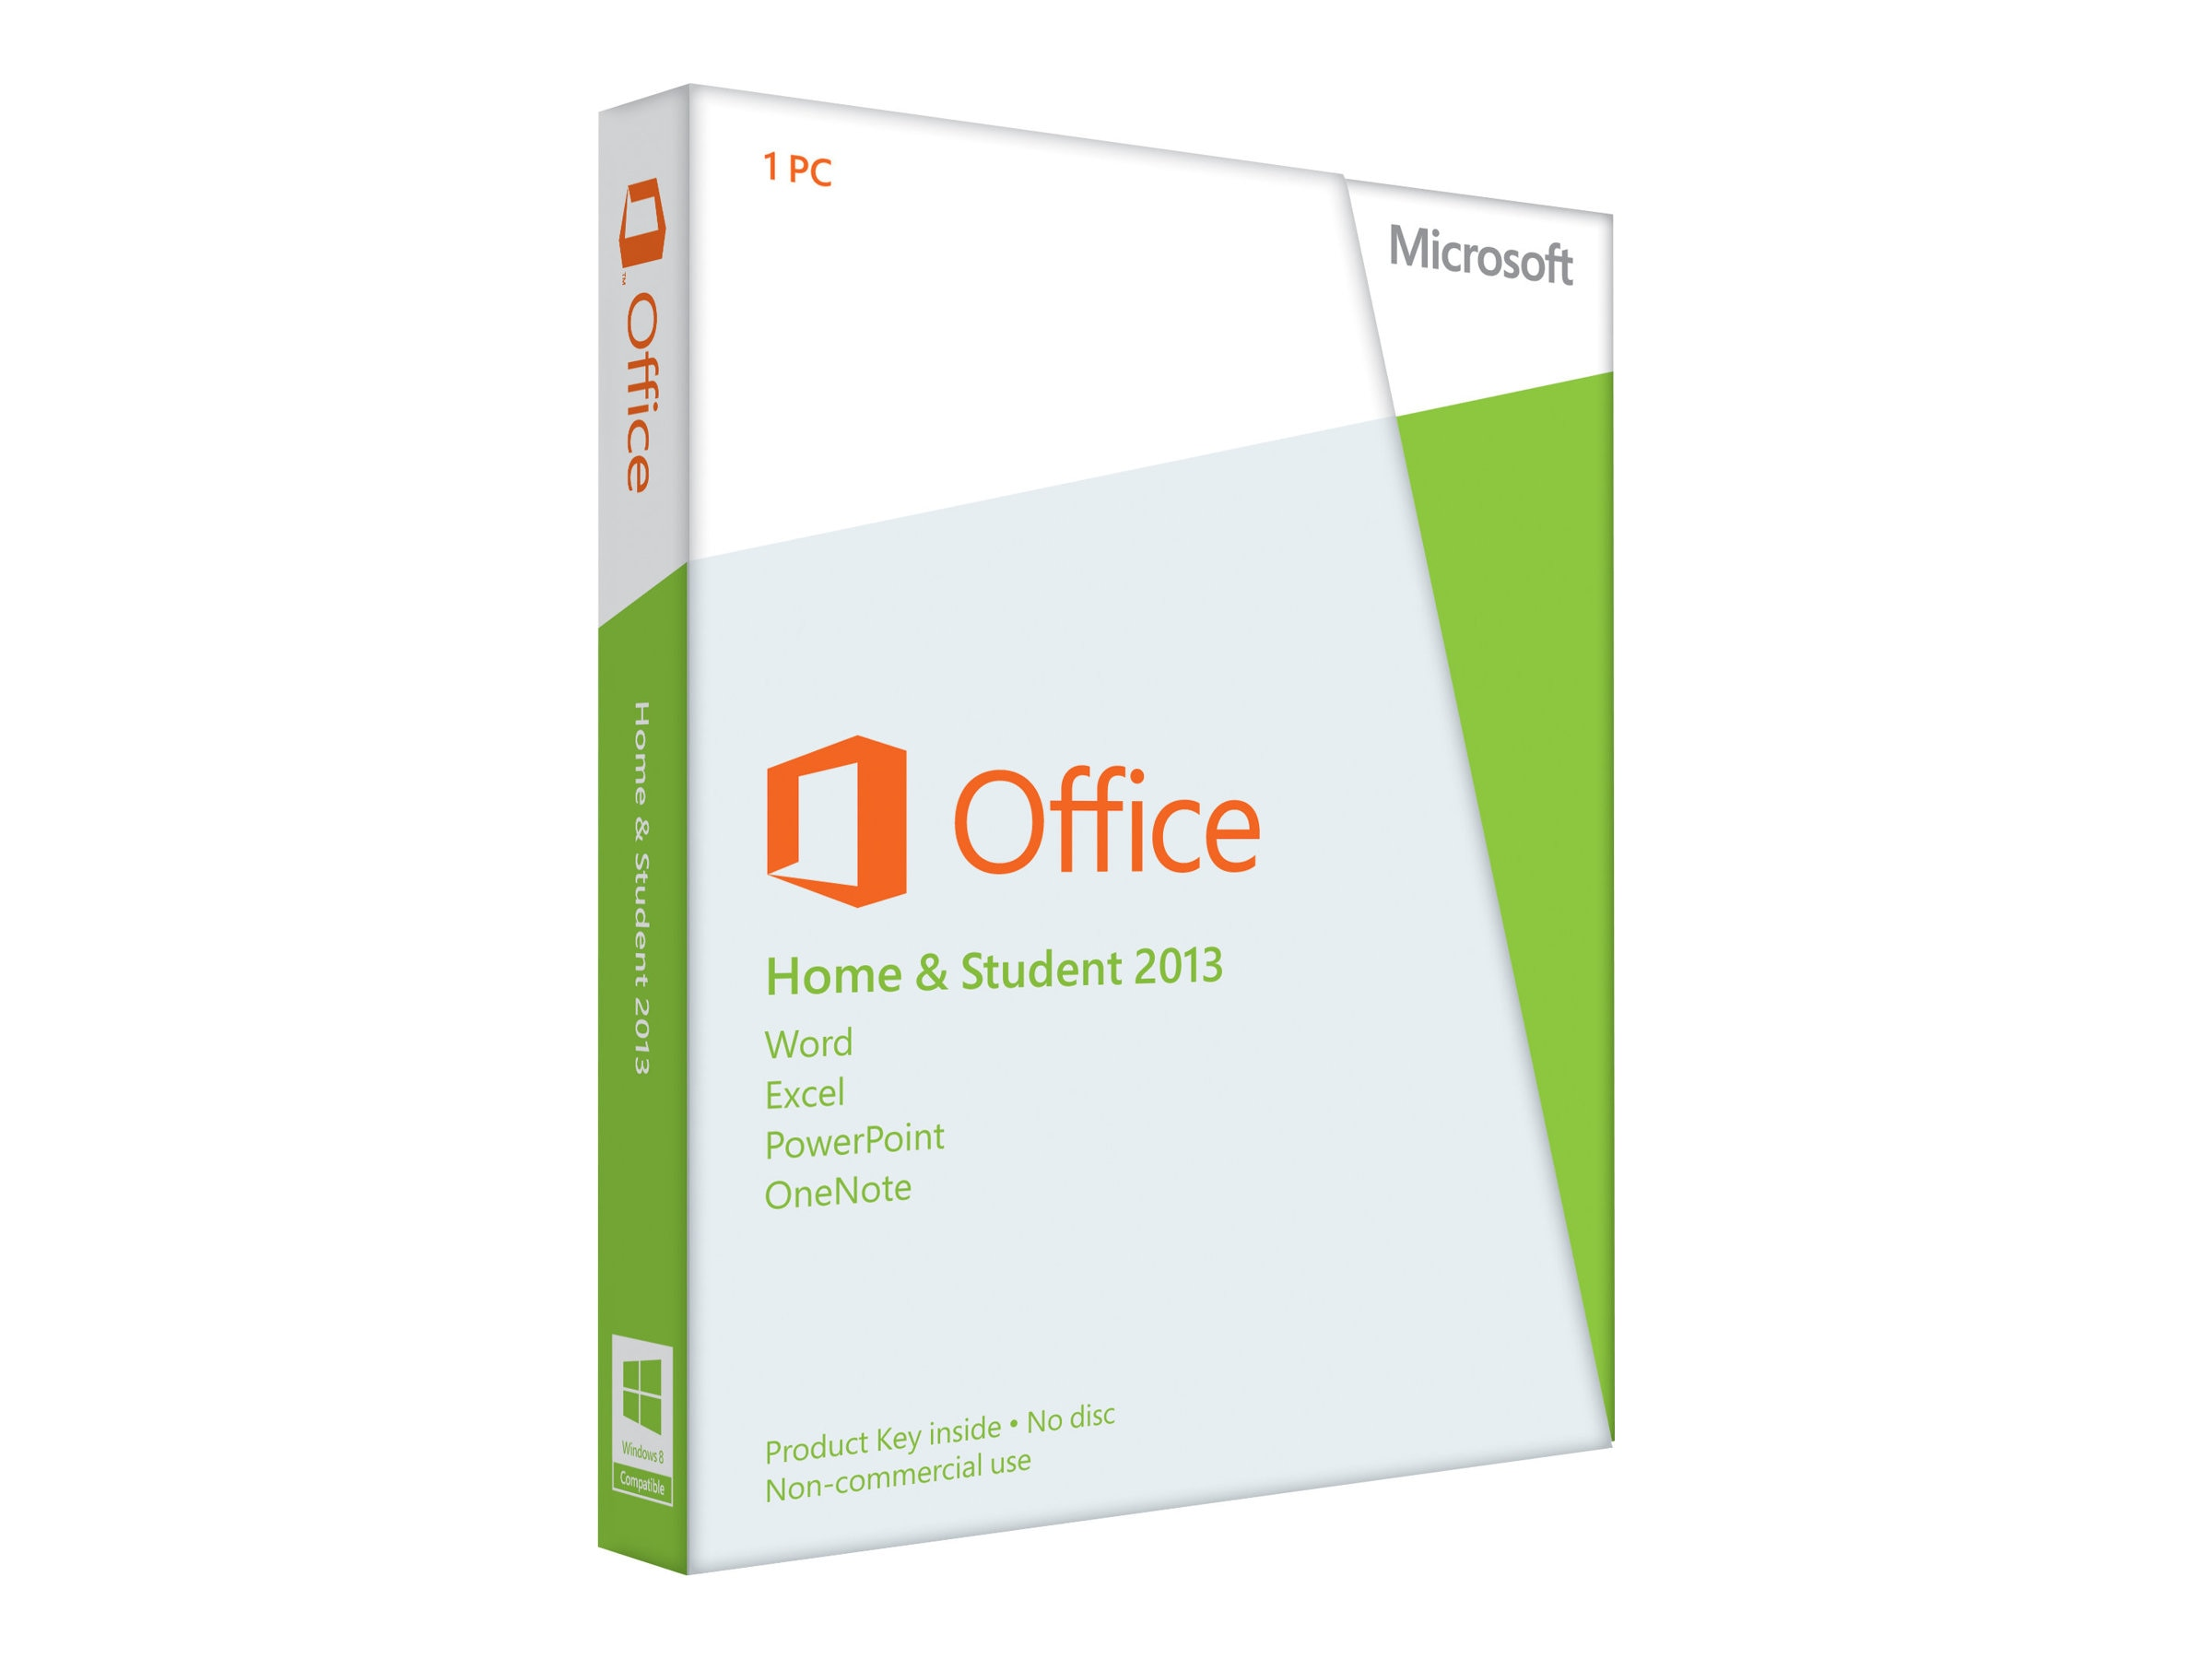 Microsoft Office Home and Student 2013 32-bit x64 English Medialess, 79G-03550, 15266098, Software - Office Suites